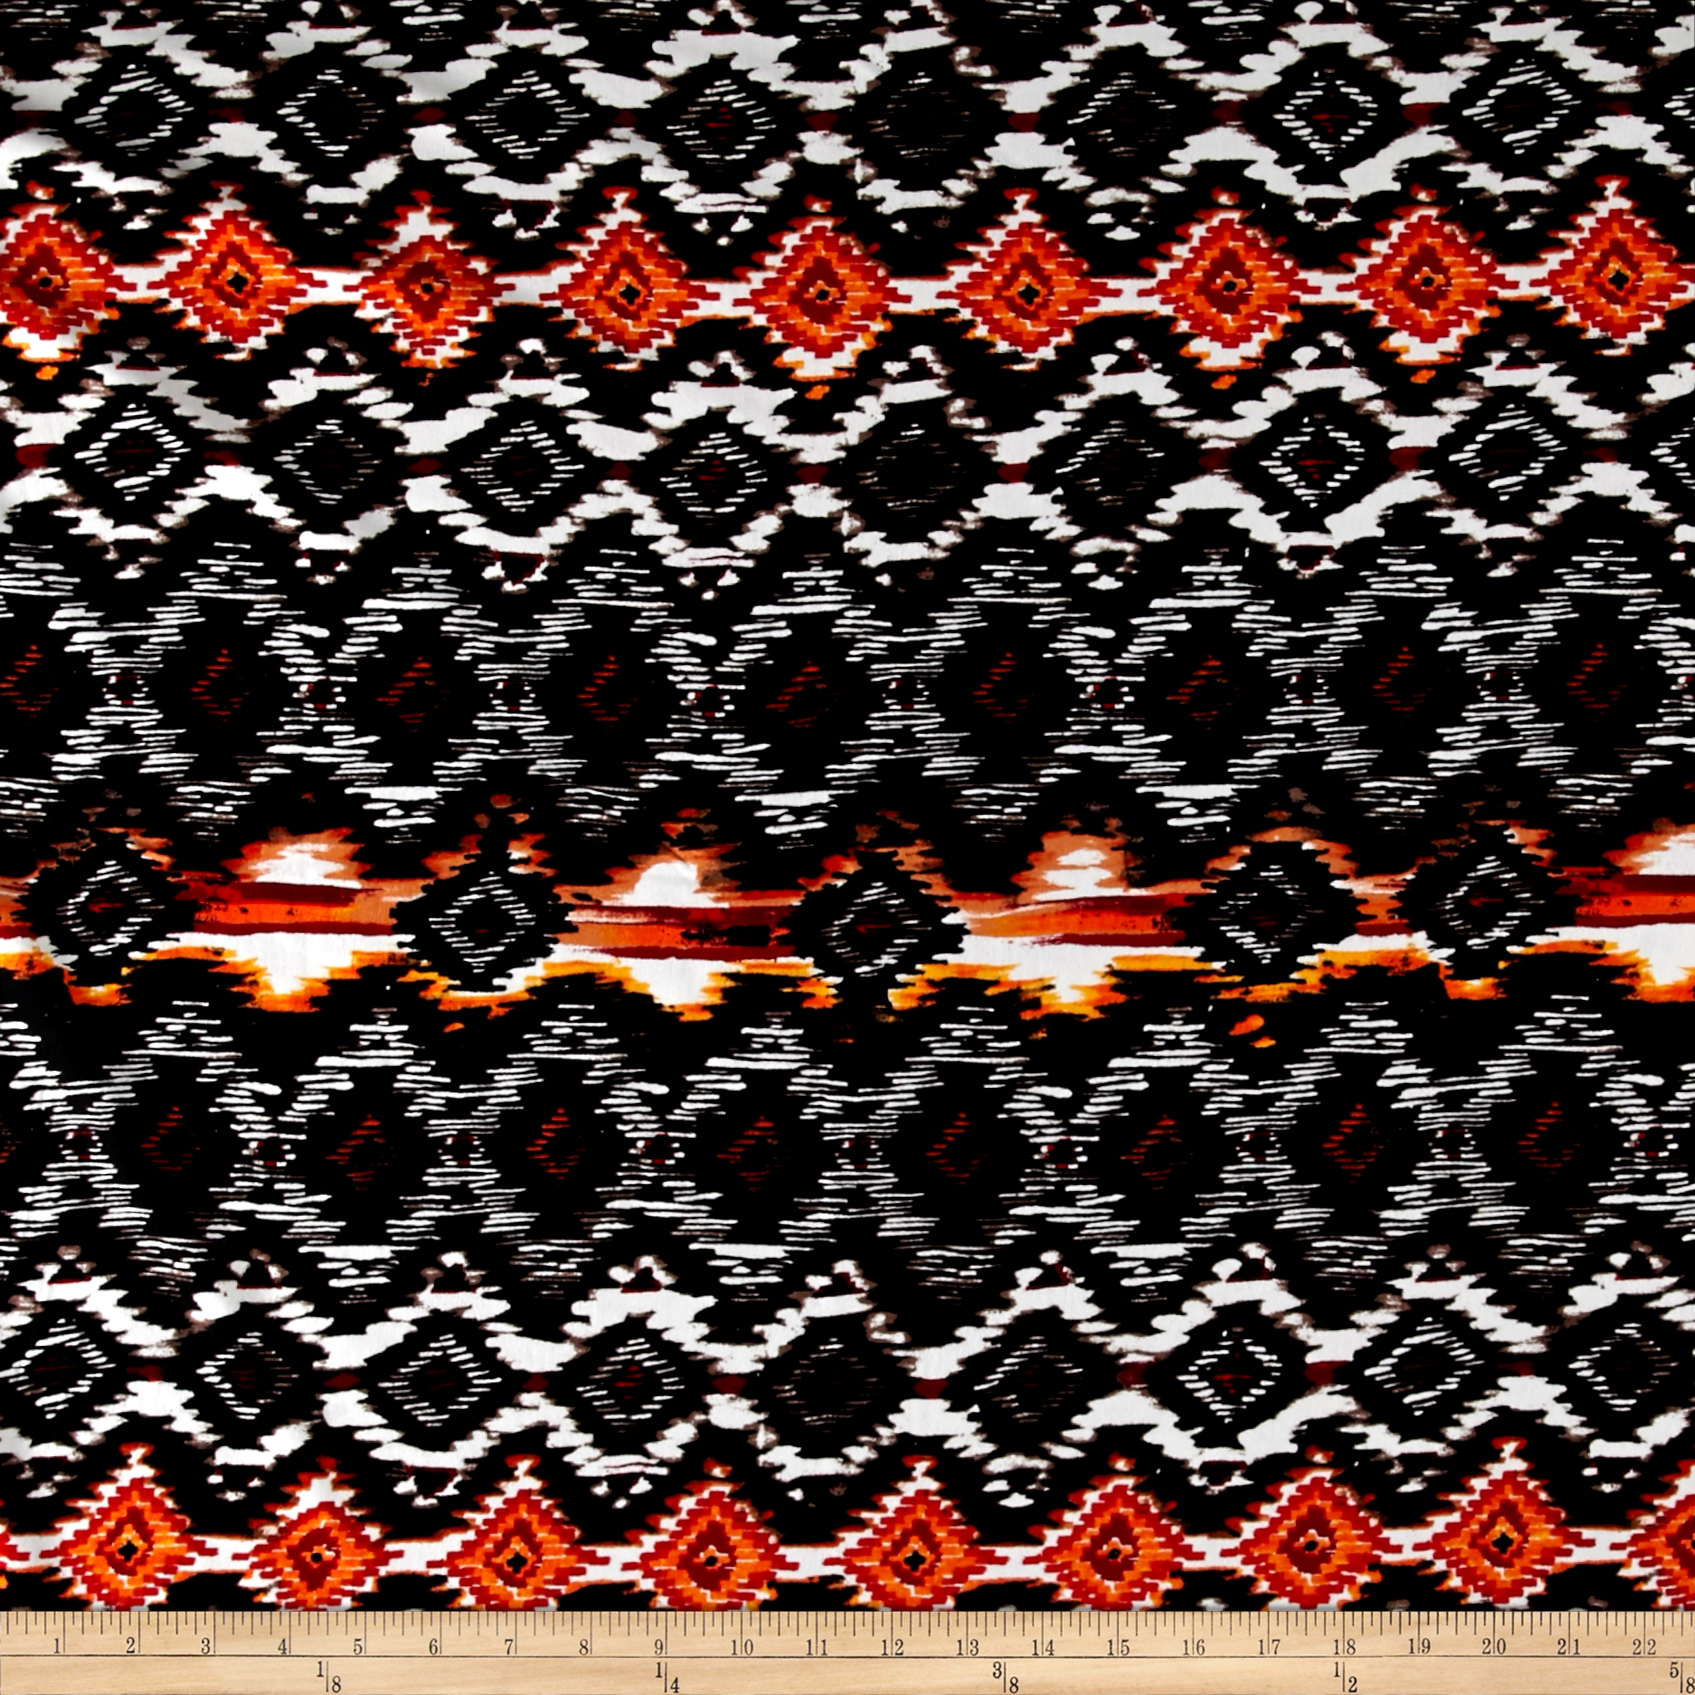 Ikat Diamond Span Jersey Knit Black/Orange Fabric